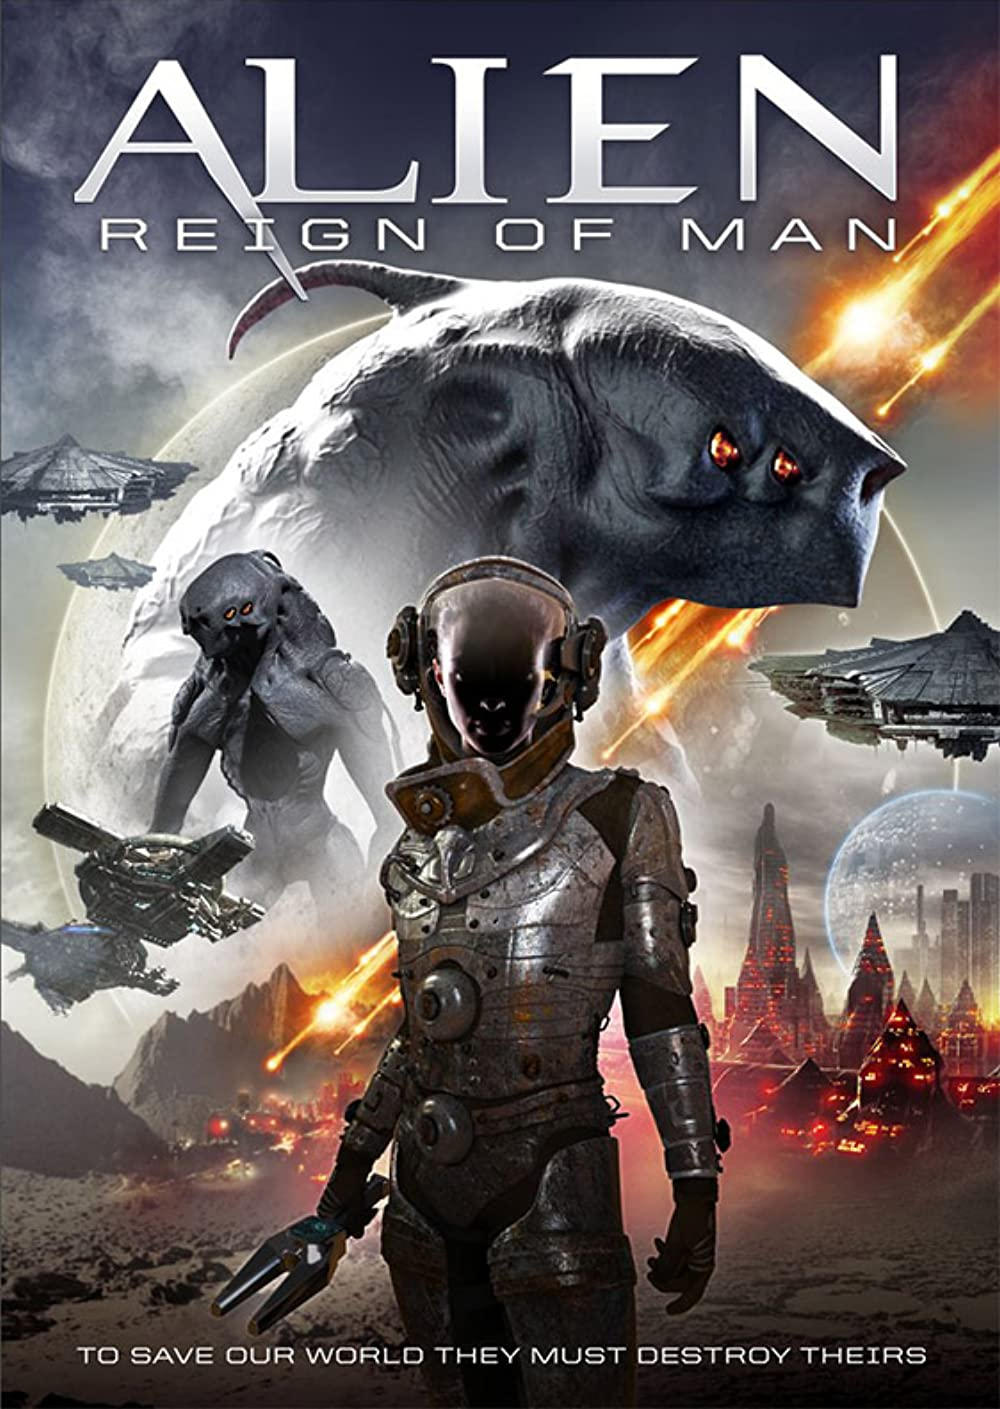 Download Alien Reign of Man 2017 Hindi Dual Audio 480p HDRip ESubs 300MB